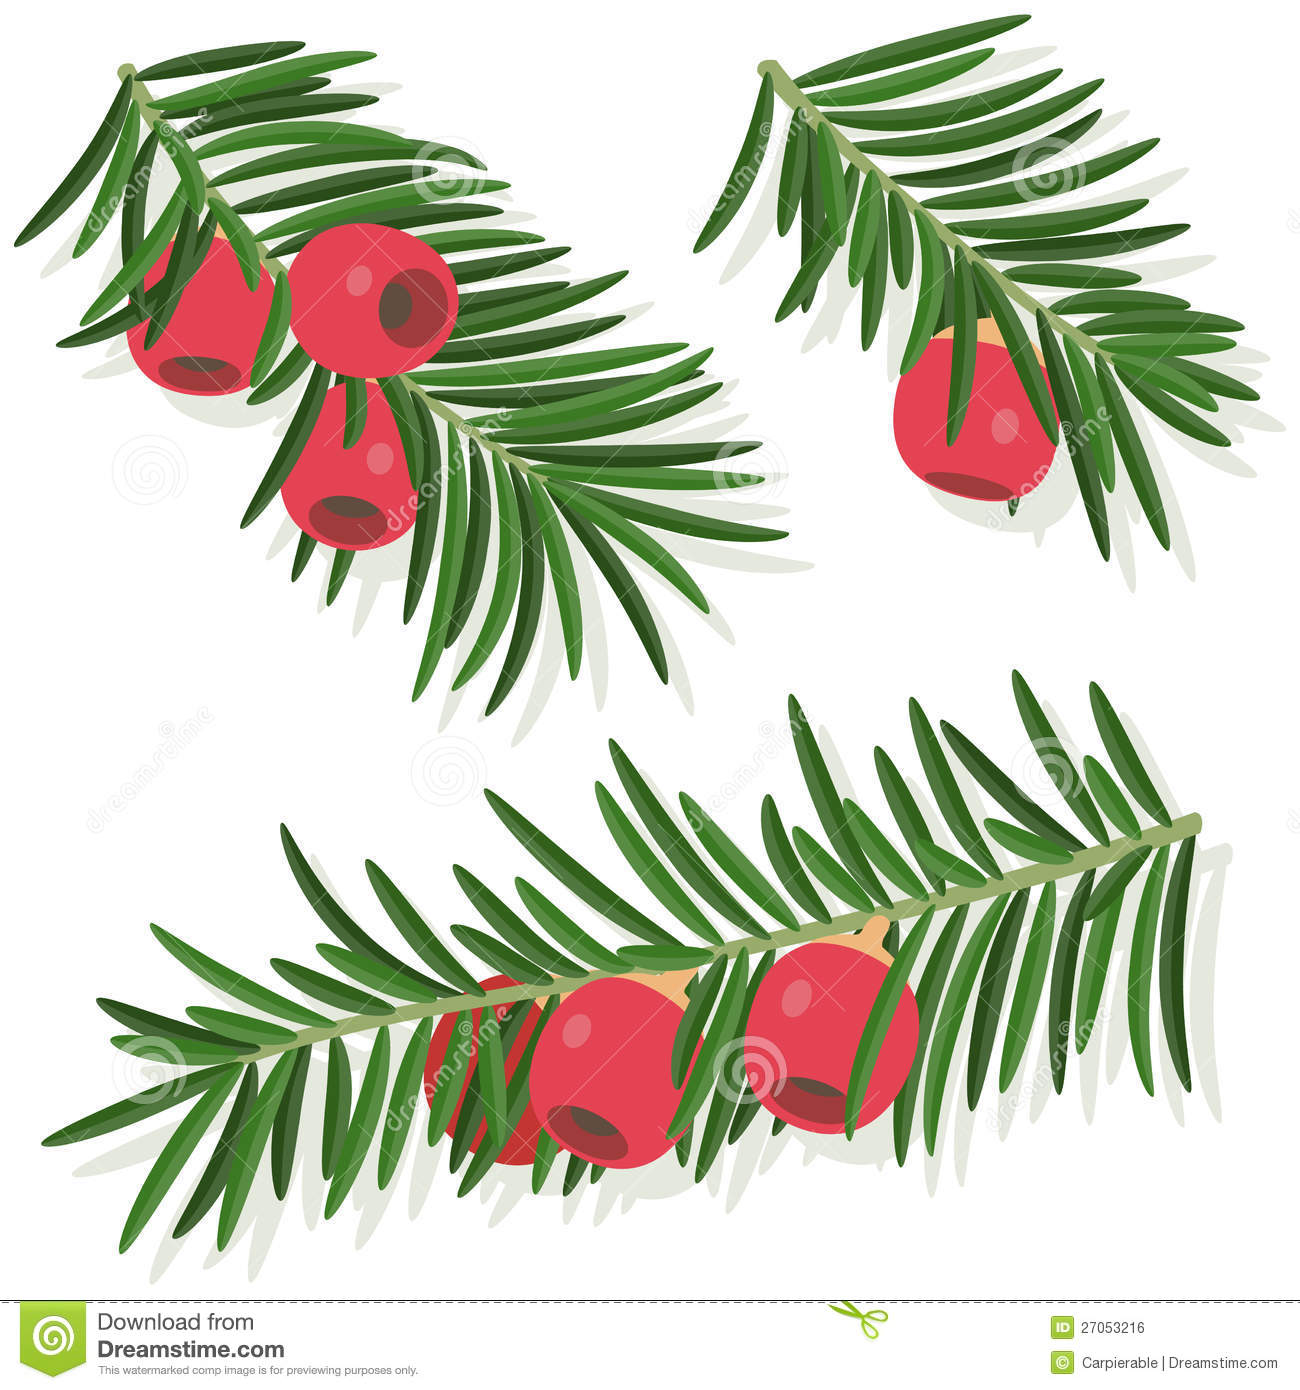 Yew Leaf Sprig Stock Illustrations.